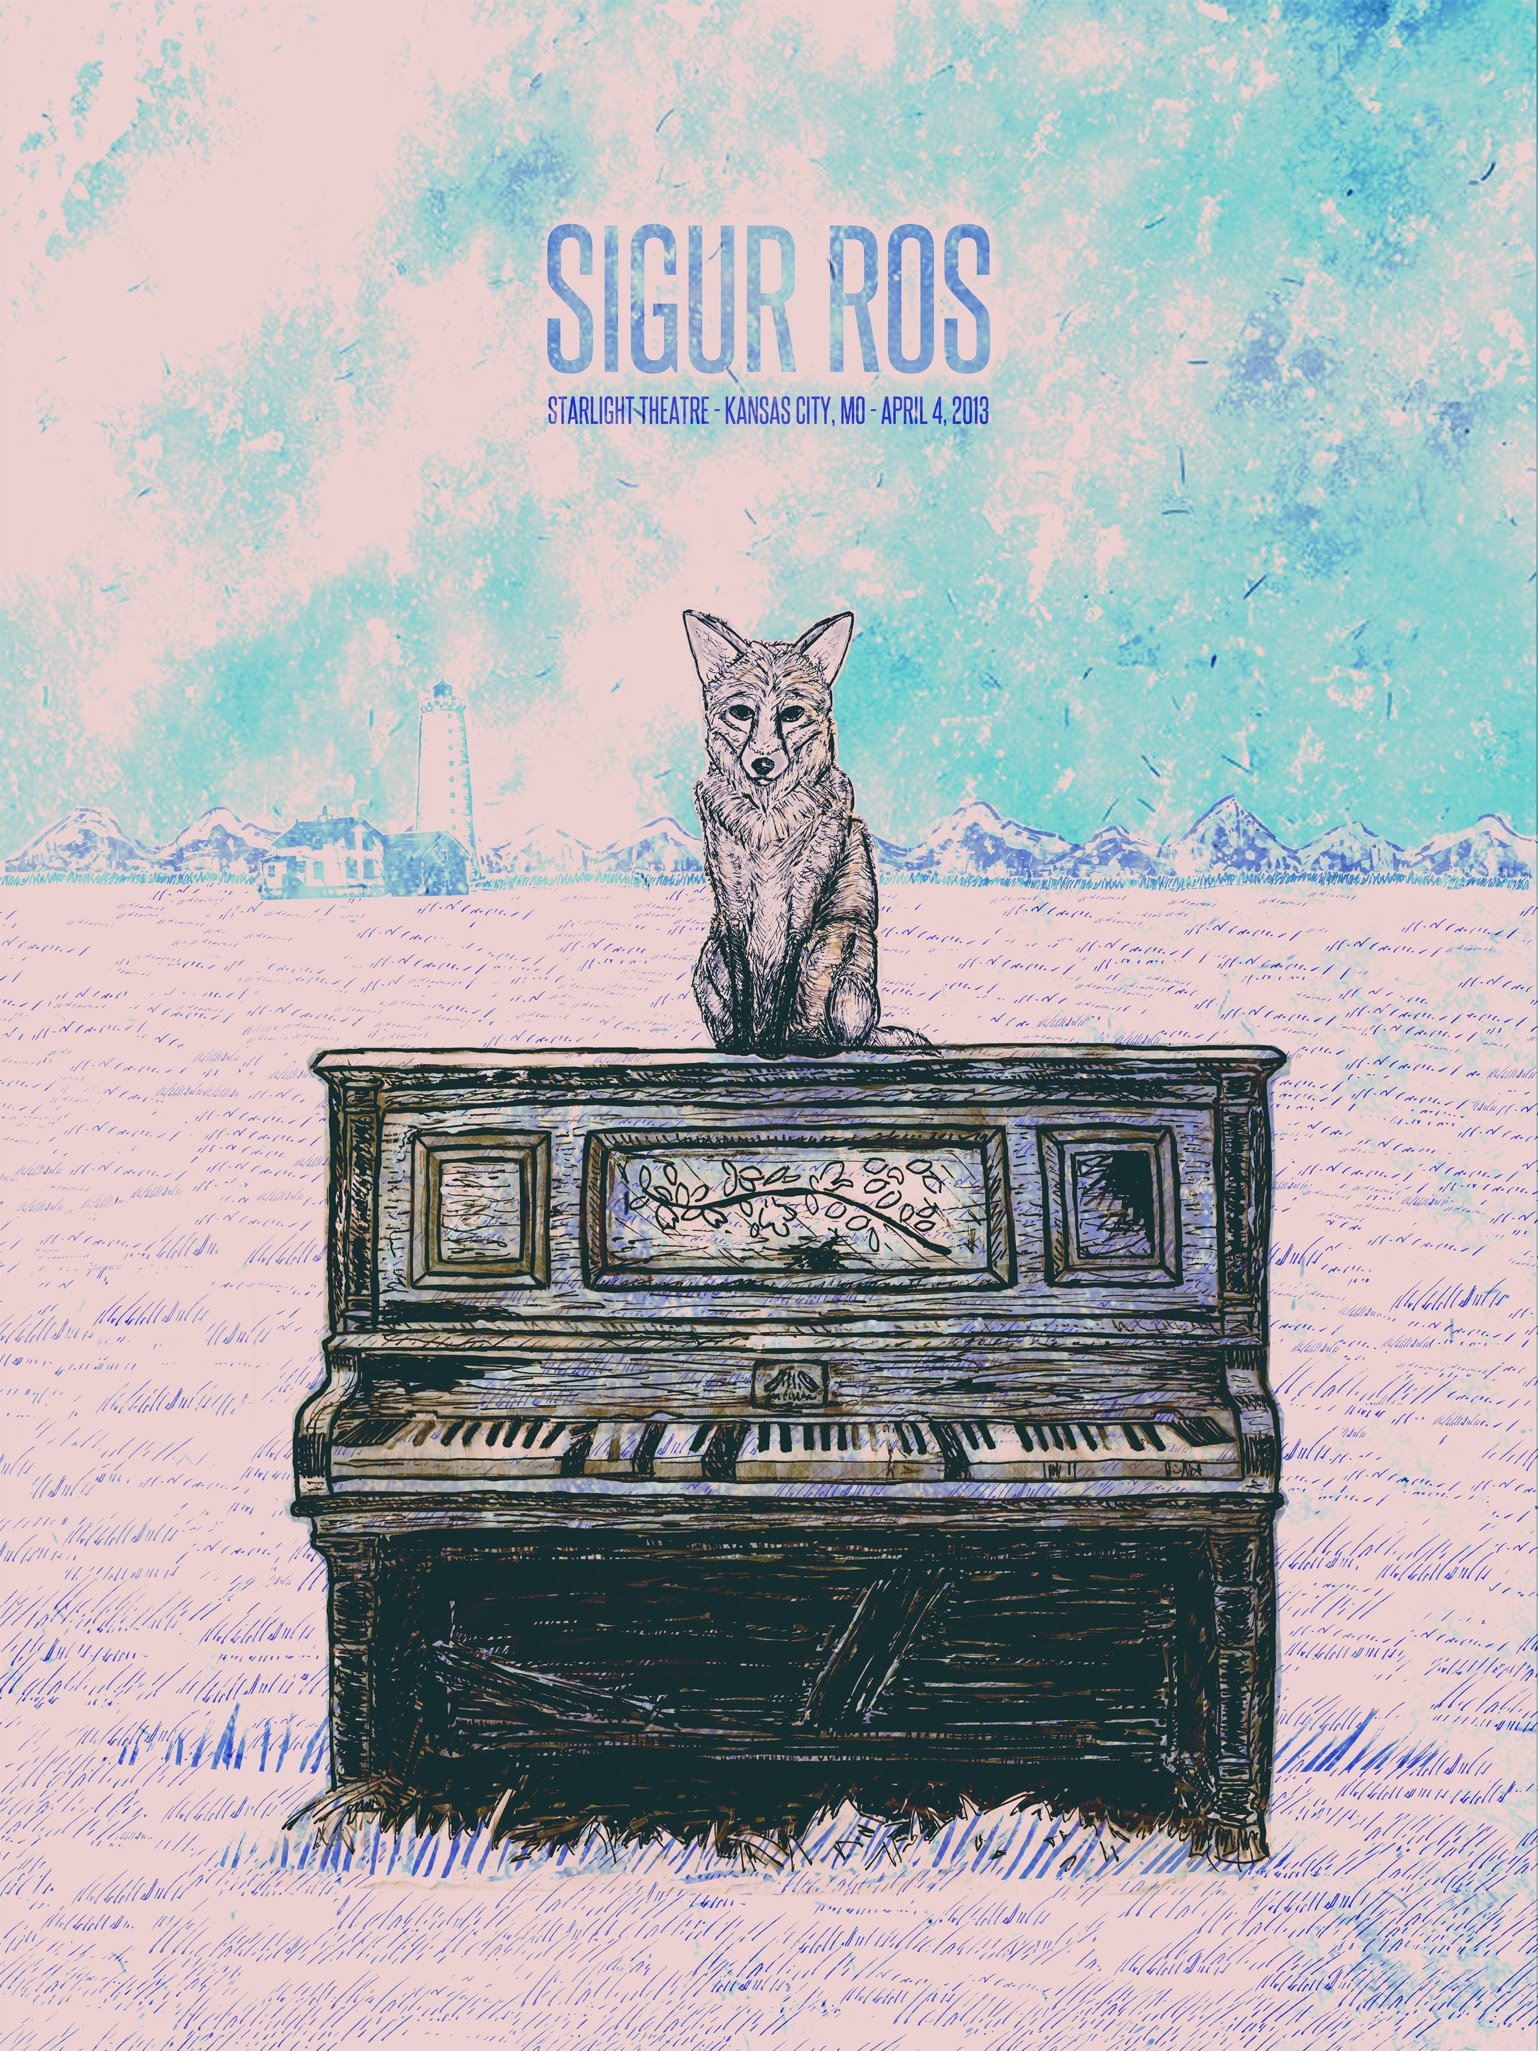 Sigur Ros Gig Poster  - image 13 - student project